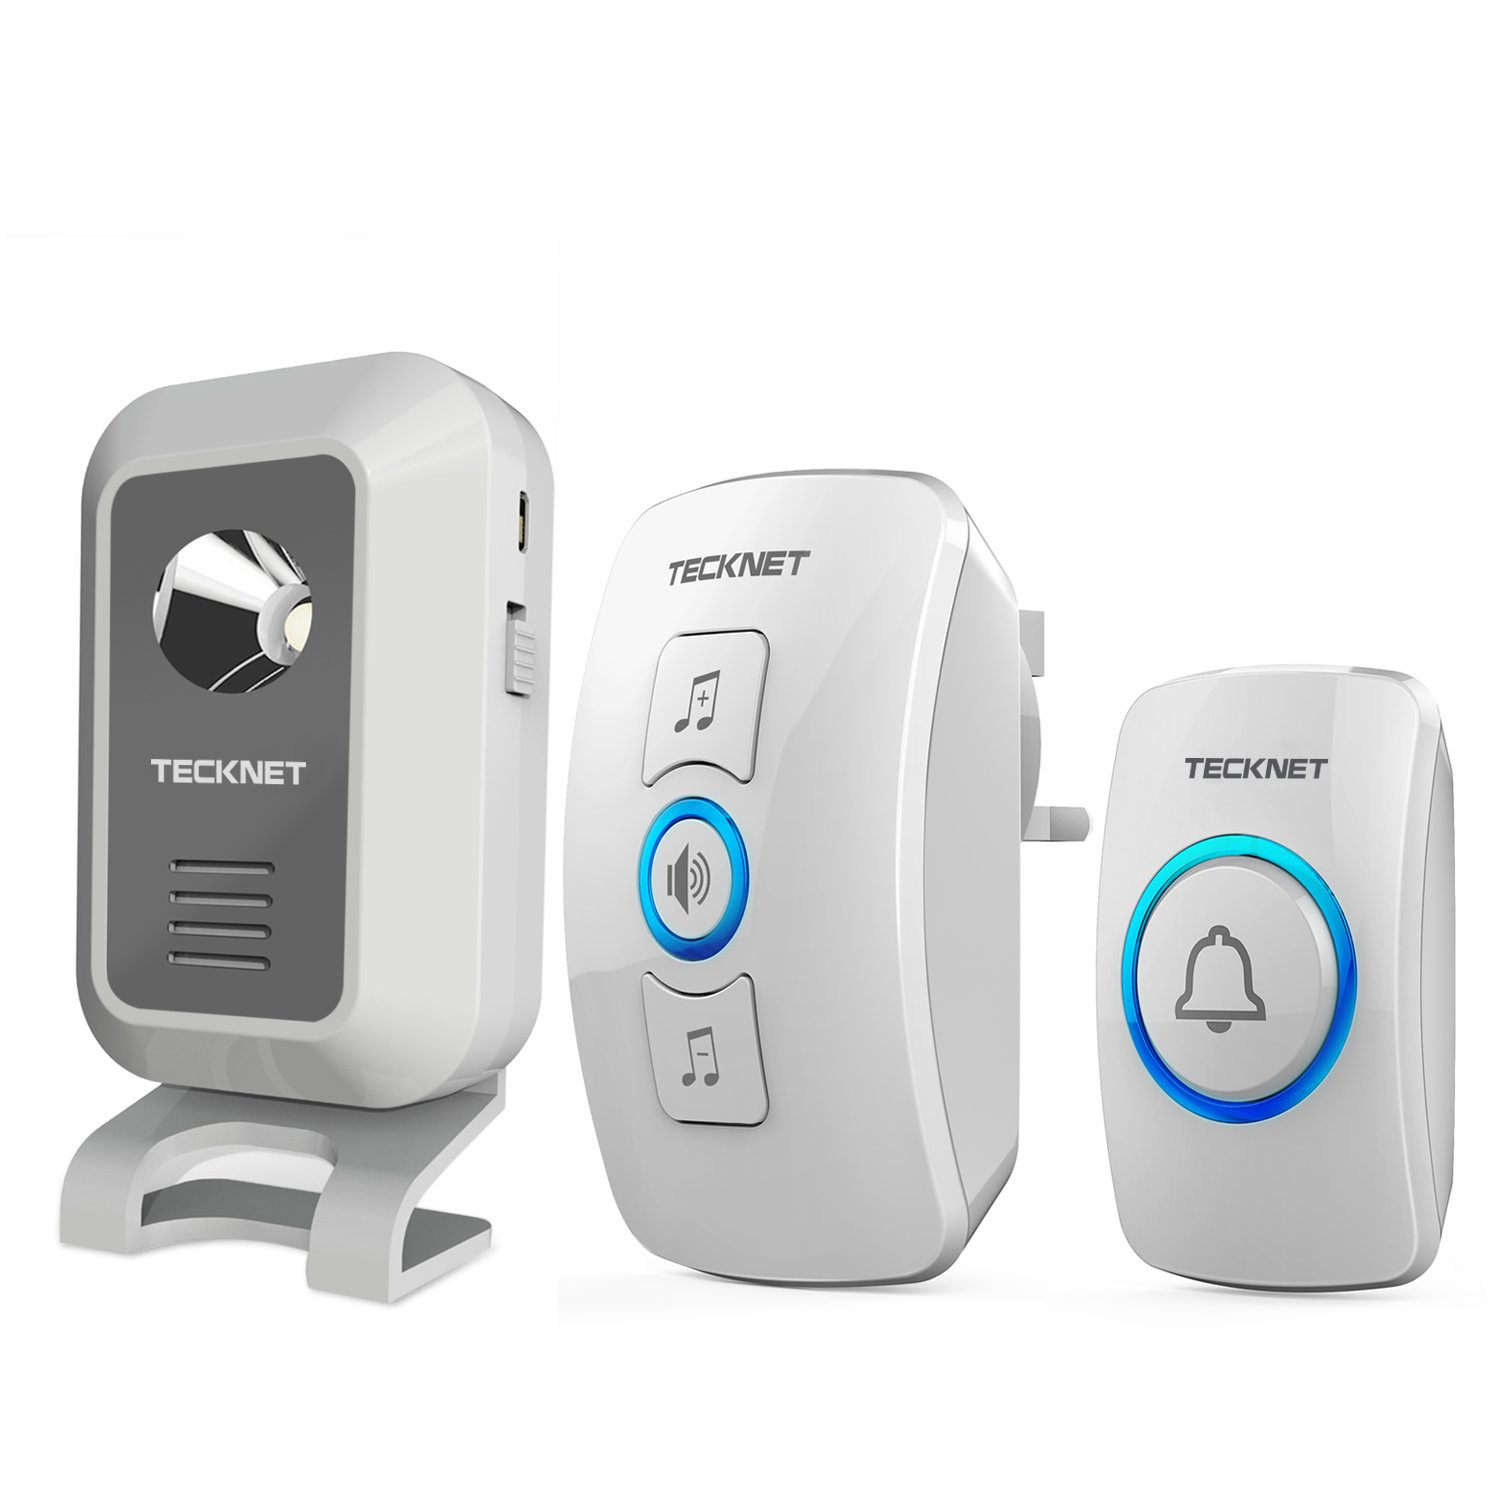 Twin Wireless Doorbell Tecknet Cordless Door Chime With 1 Battery Electrical Wiring In The Home Deaf Doorbells Operated Receiver Wall Plug At 500 Feet Range Diy Tools